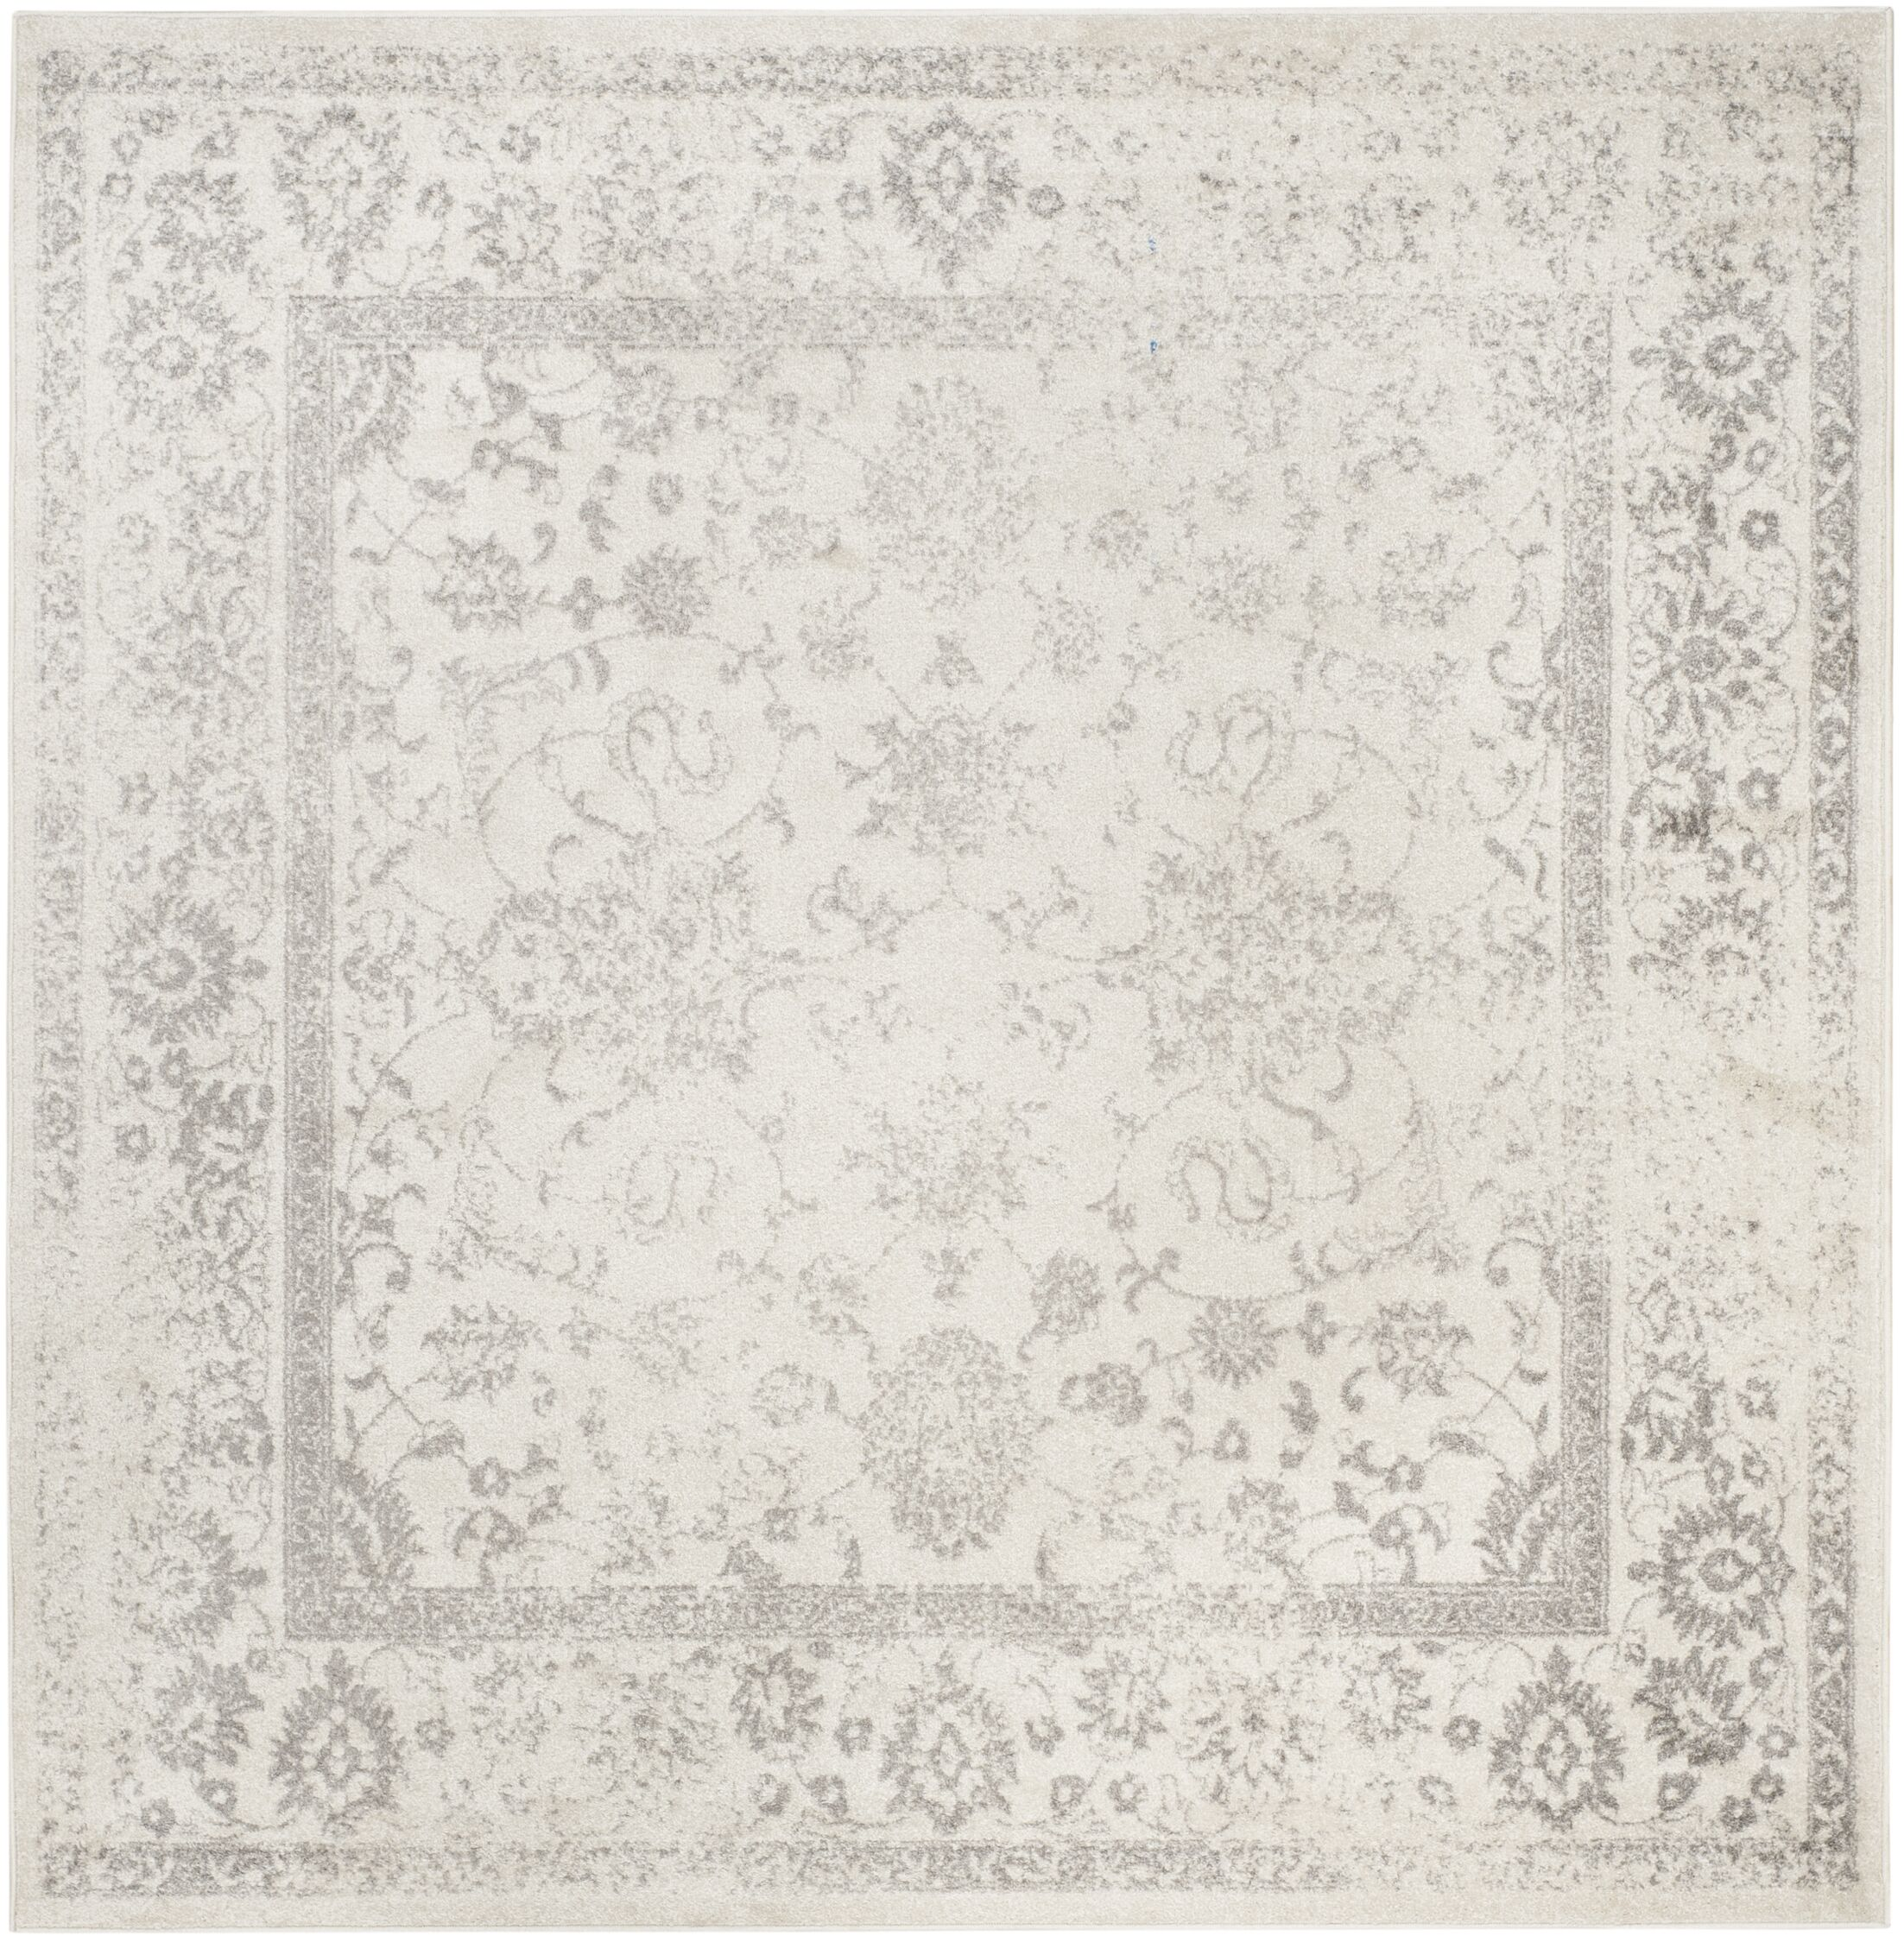 Power Loom Aiken Ivory/Silver Area Rug Rug Size: Square 8'